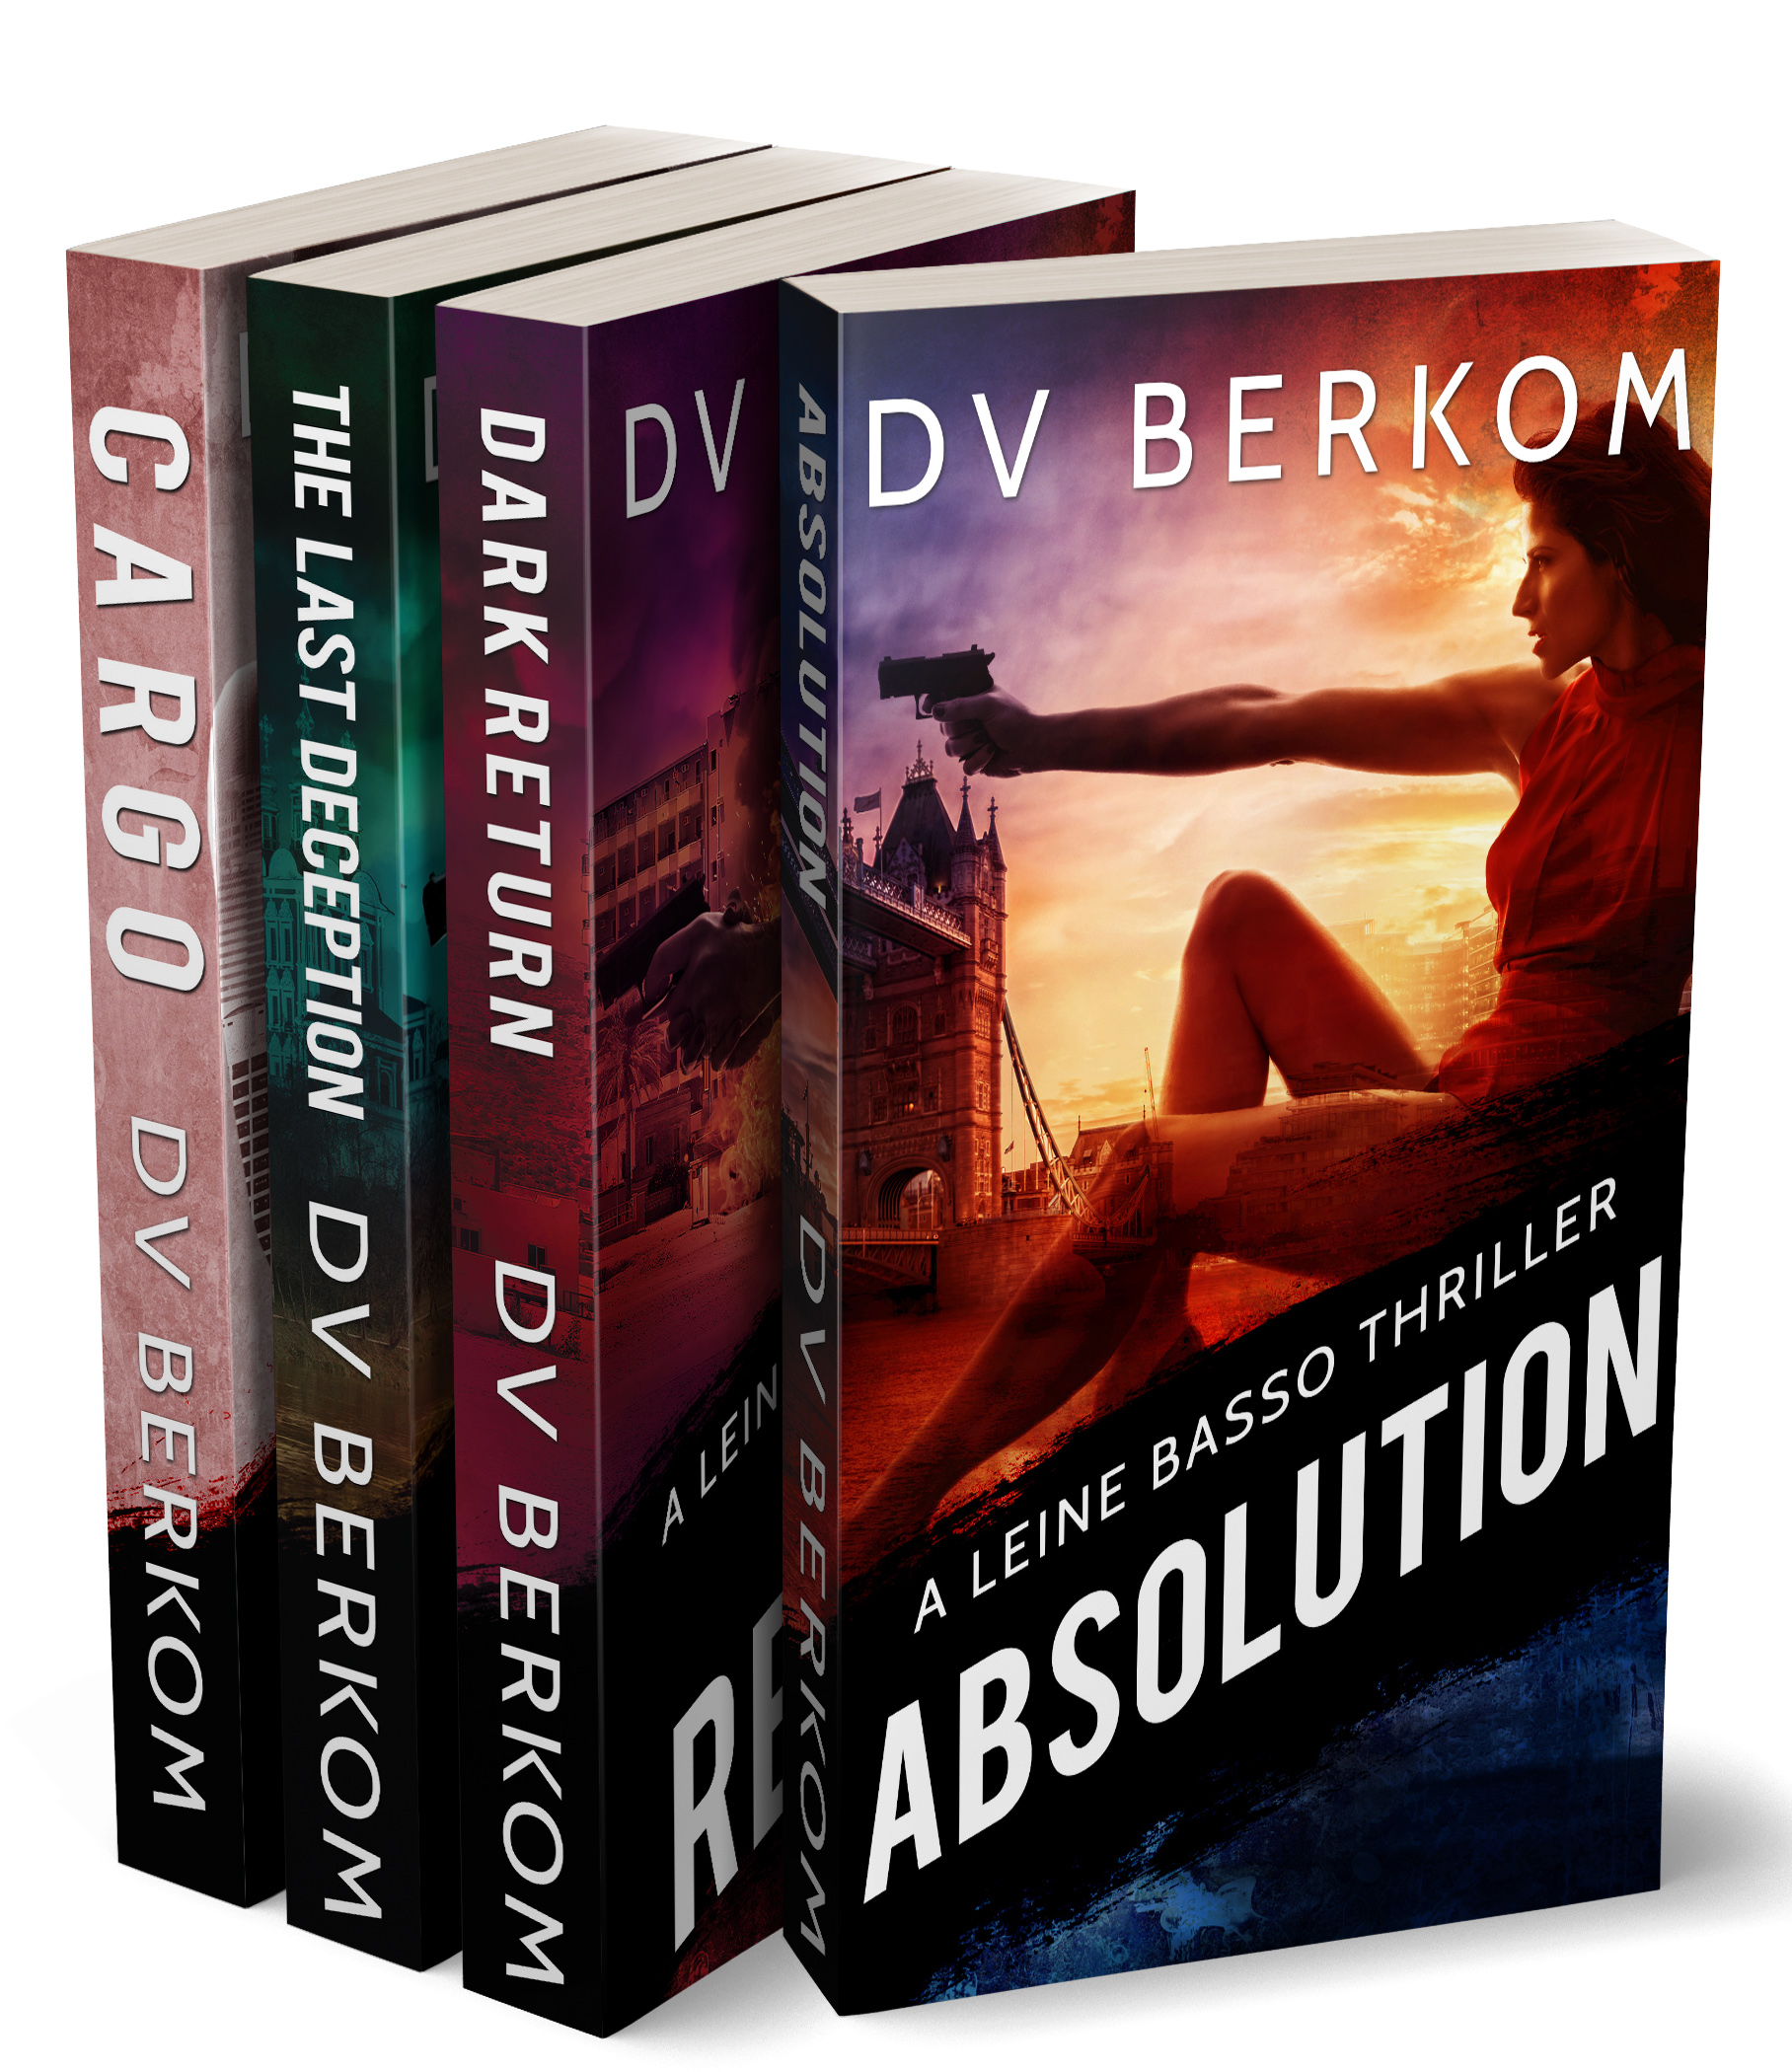 cover for the leine basso thriller series volume 2